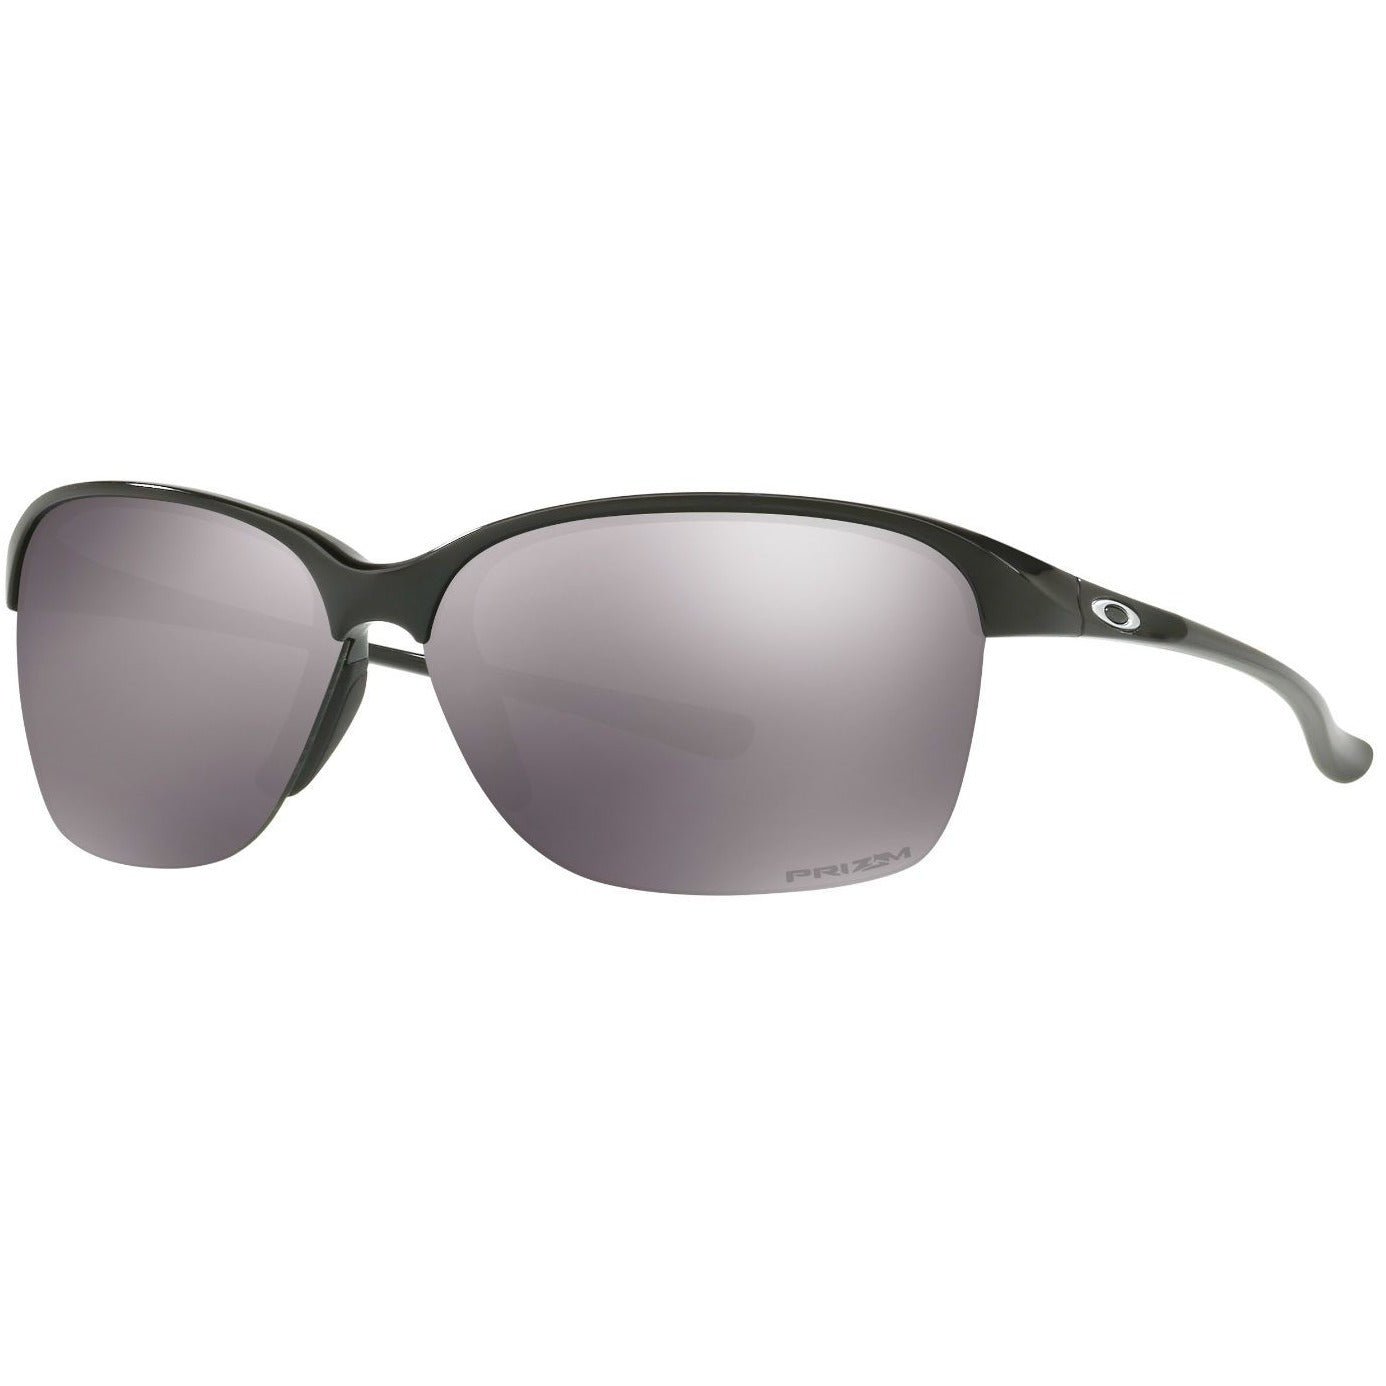 Oakley Unstoppable Sunglasses - 88 Gear